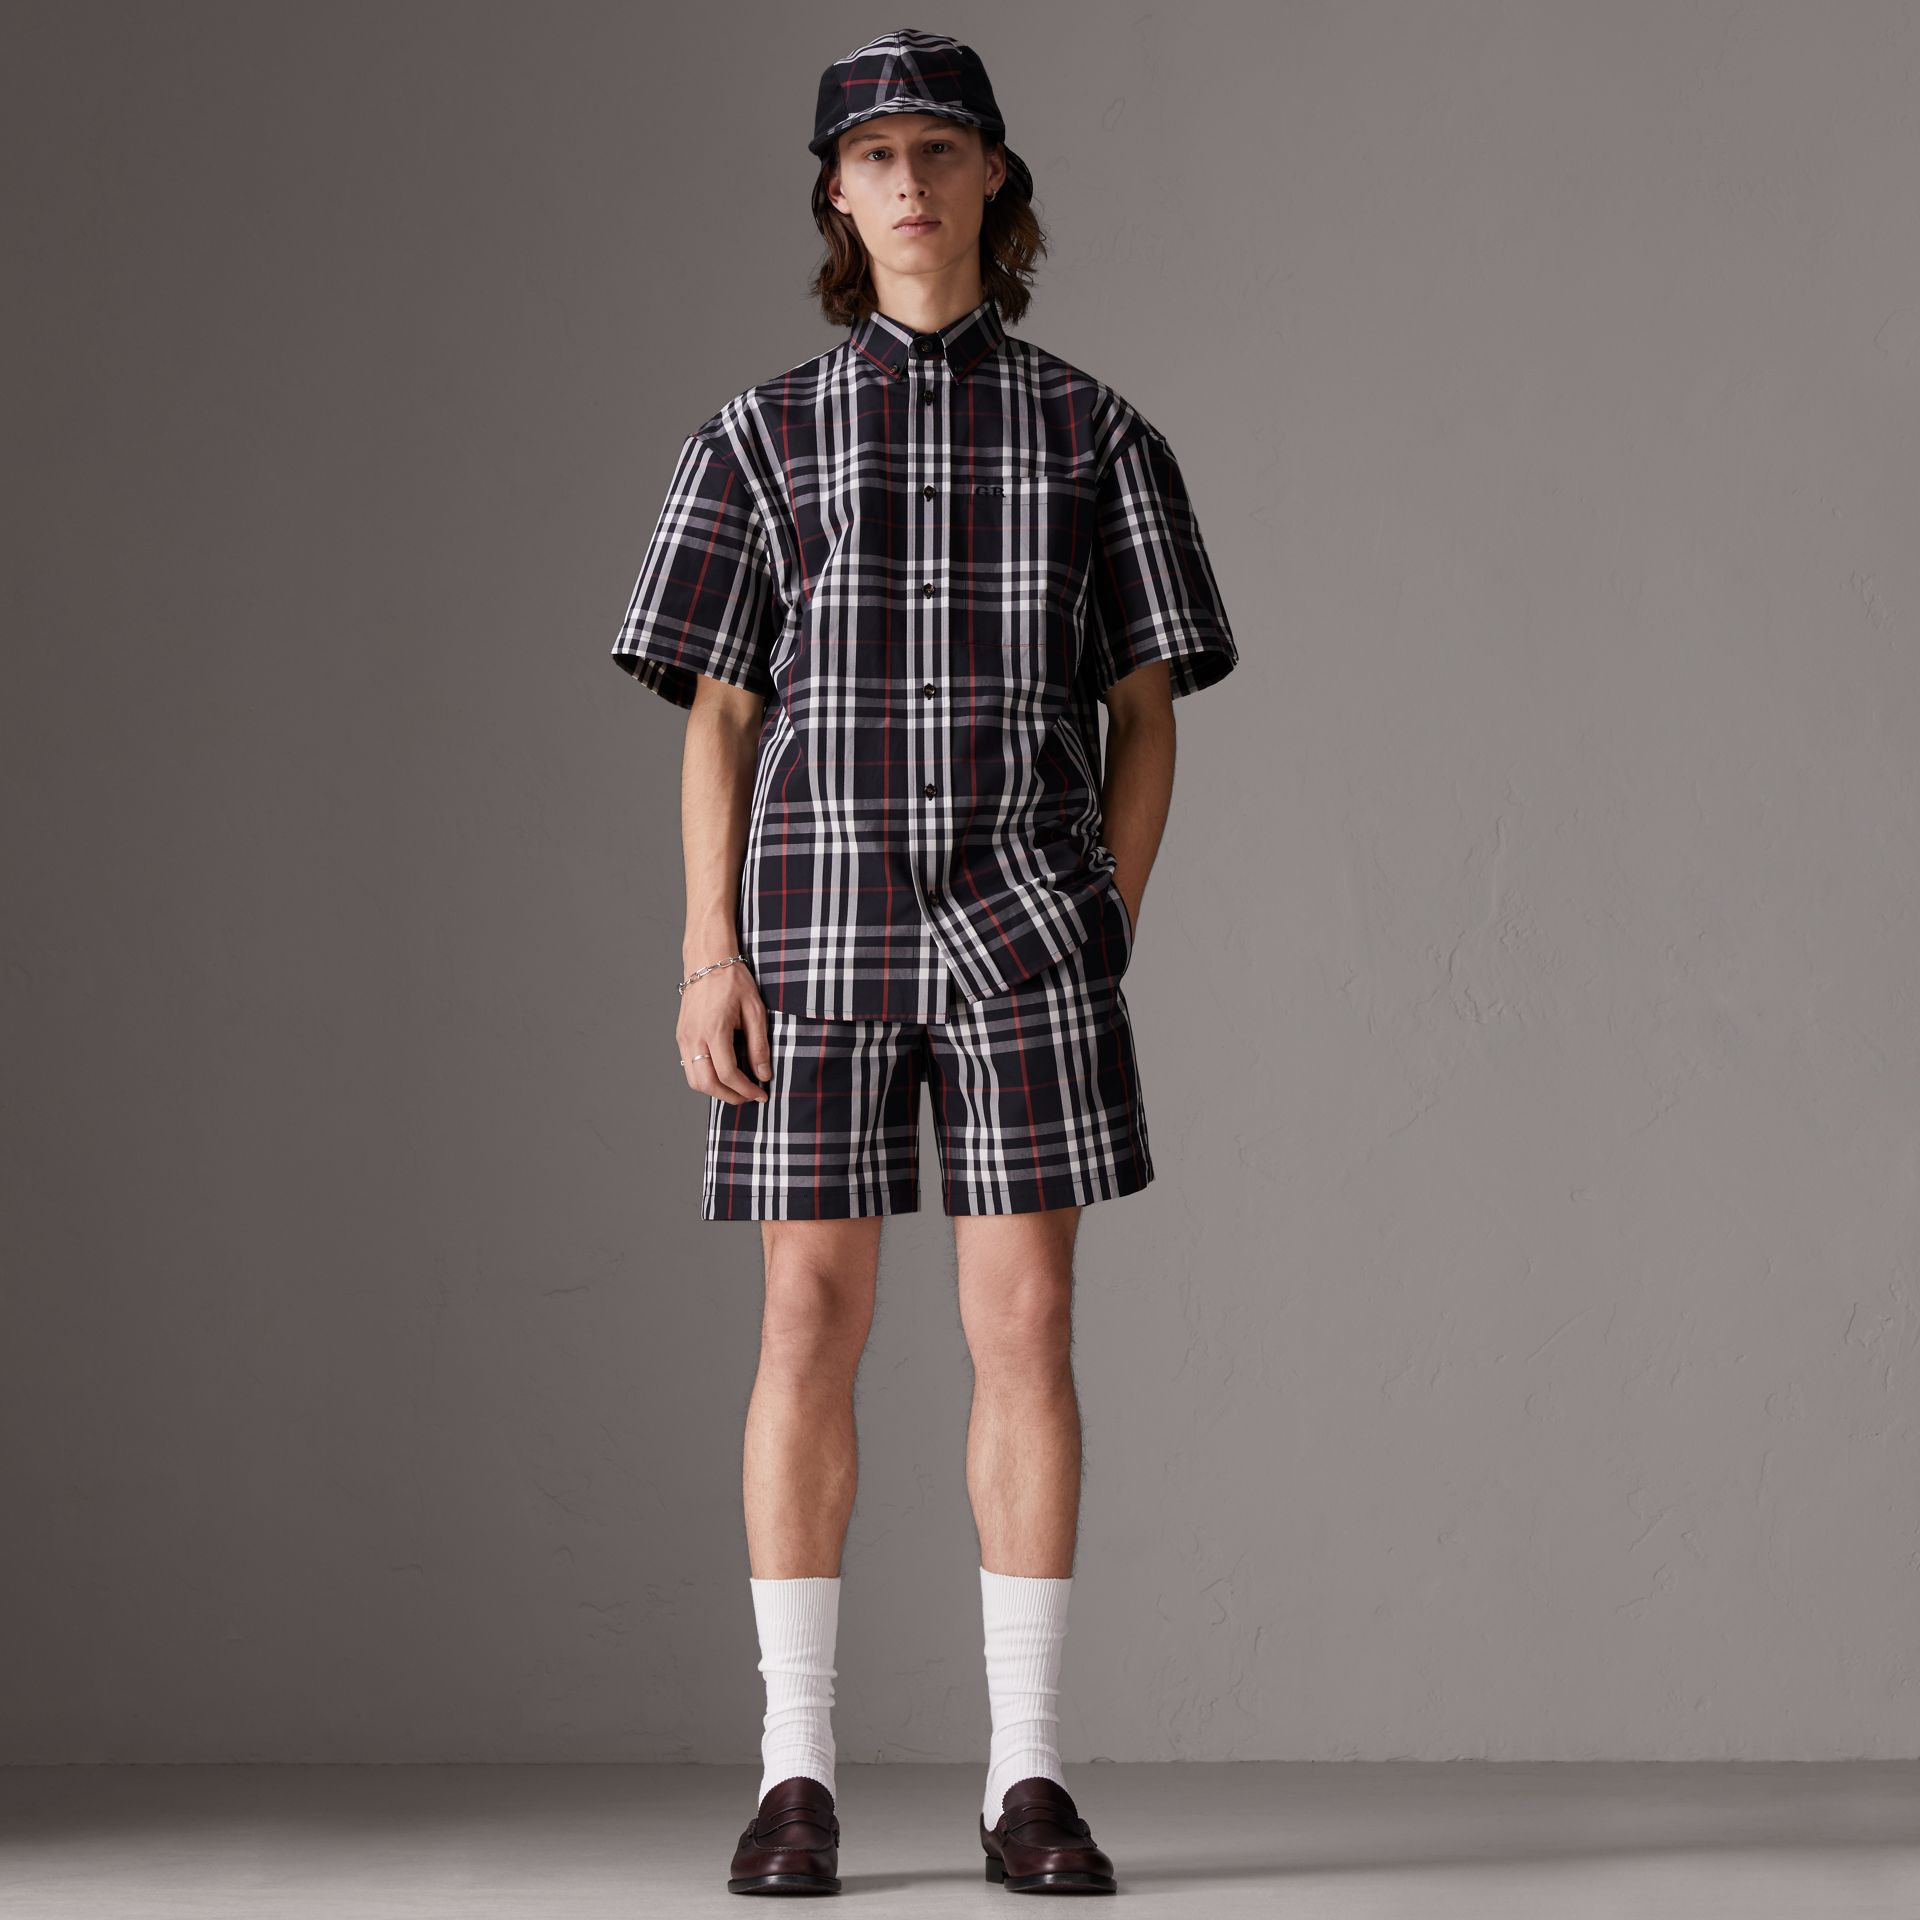 Gosha x Burberry Short-sleeve Check Shirt in Navy | Burberry Canada - gallery image 2